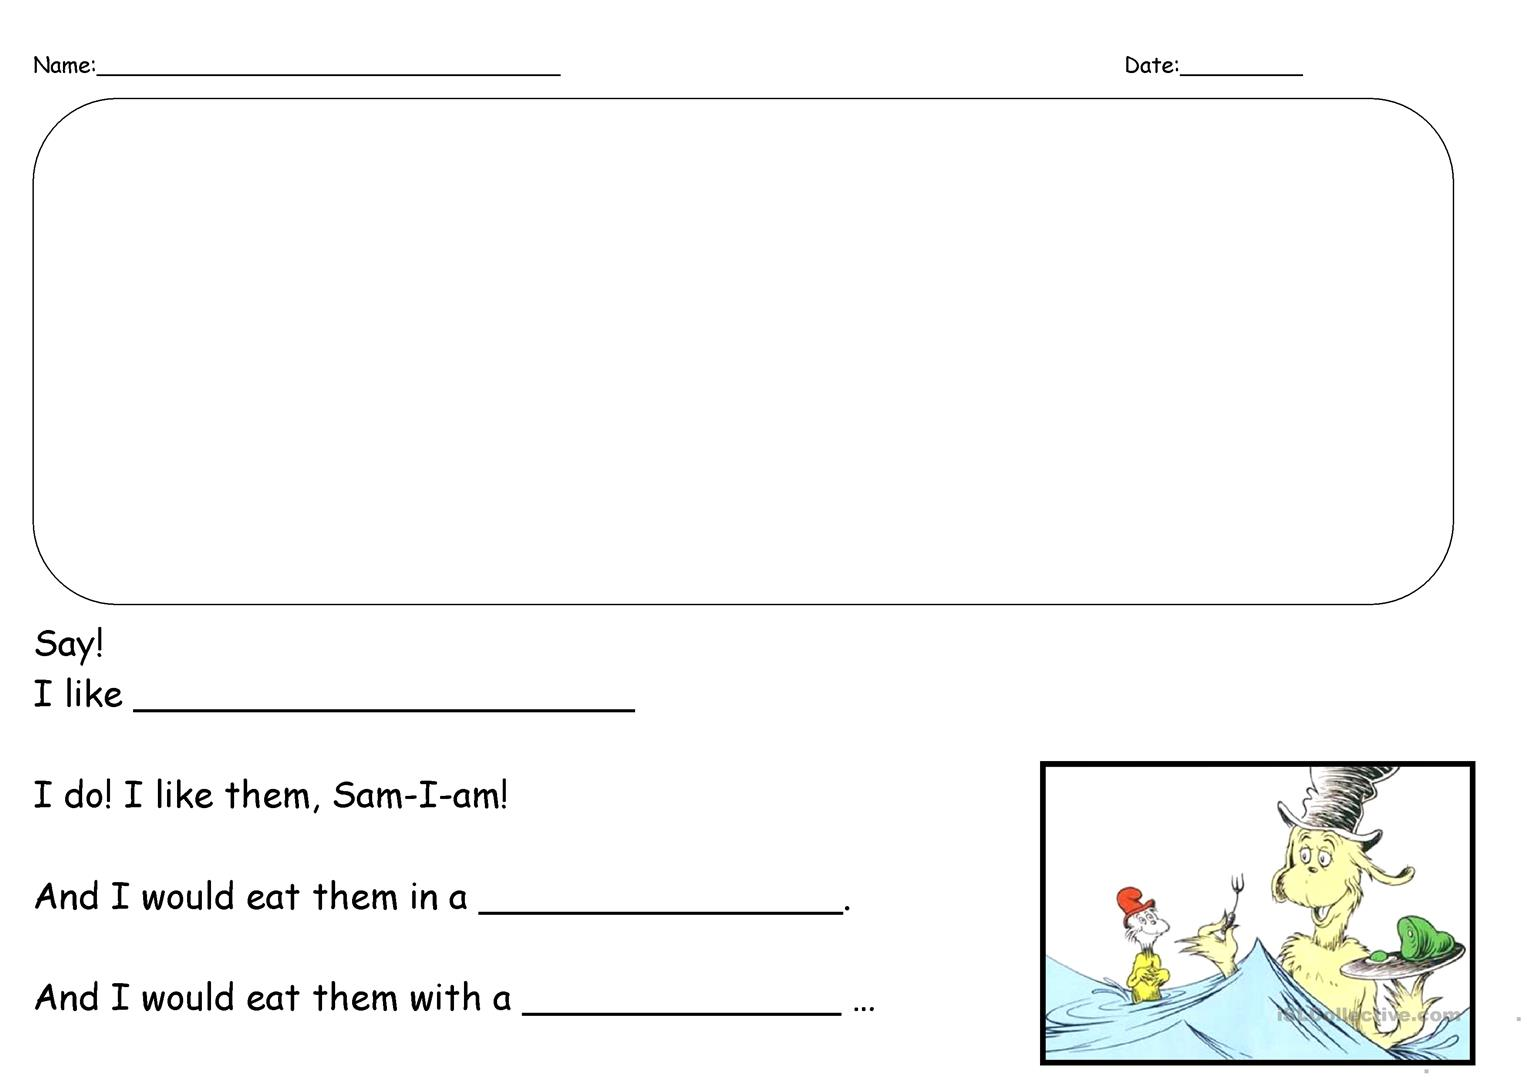 Green Eggs And Ham Writing Prompt Worksheet